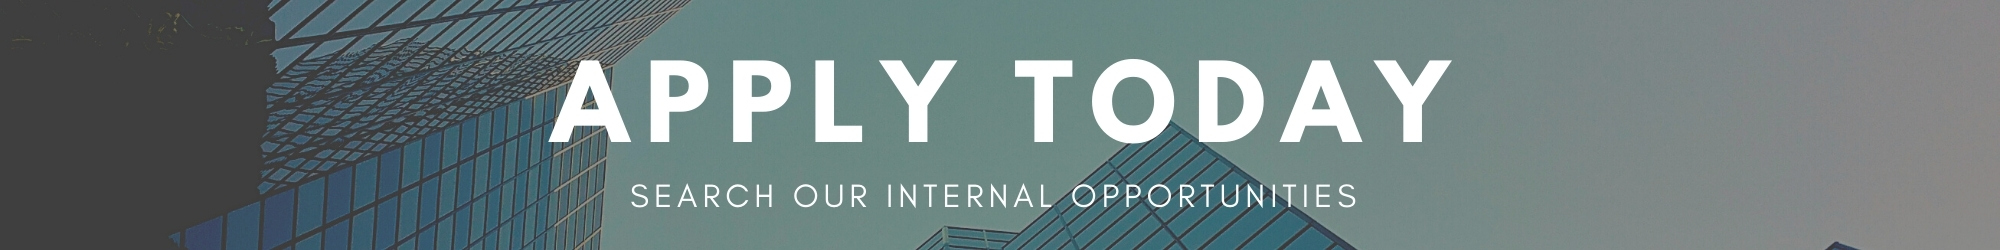 Apply today- search Scion internal opportunities, Tall office buildings in the background